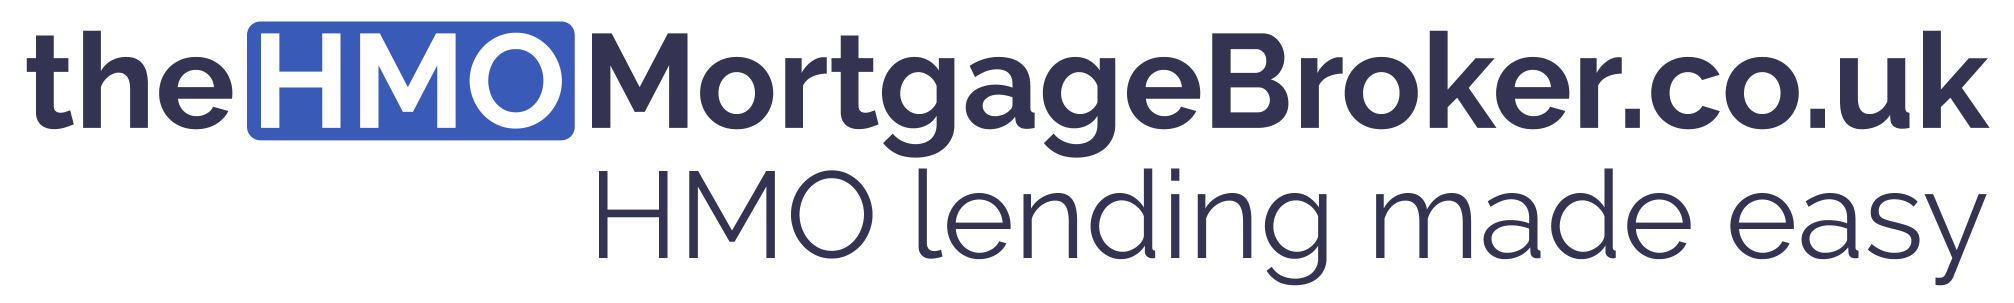 HMO Mortgages Guide Published By The HMO Mortgage Broker